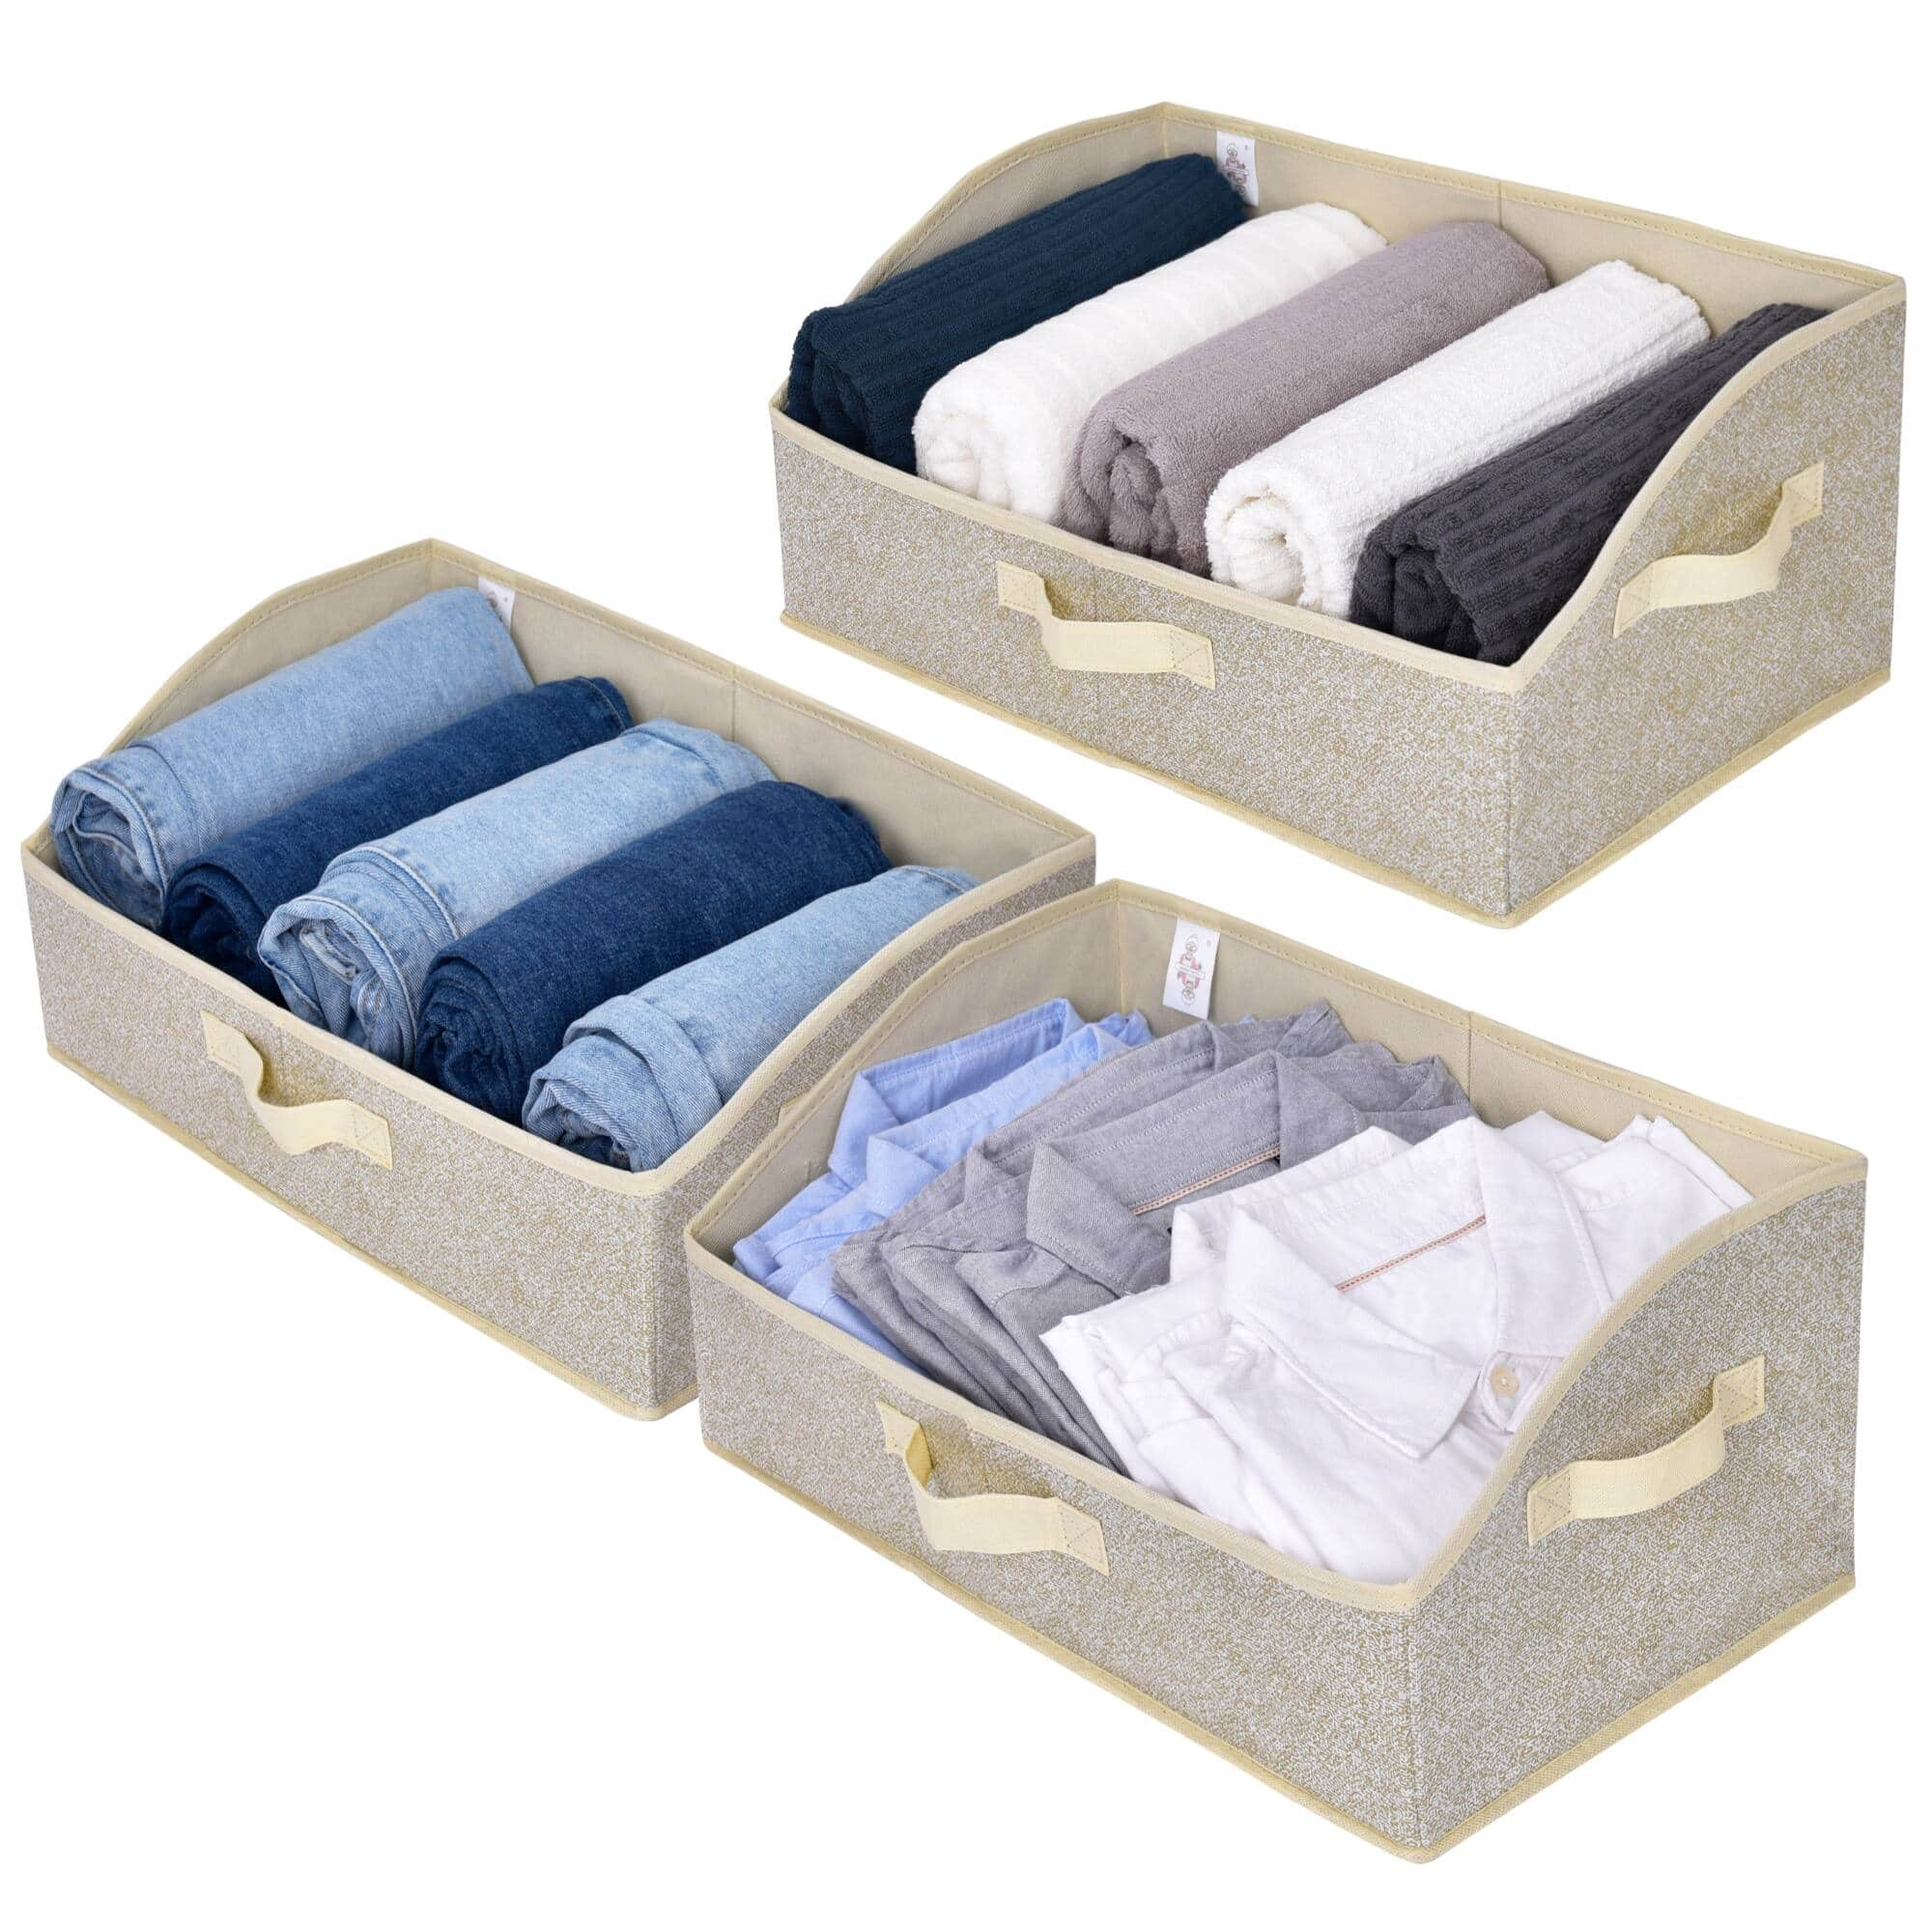 Trapezoid Storage Bins, Beige, 3-Pack, $15.39 + Free Shipping w/ Amazon Prime or Orders $25+